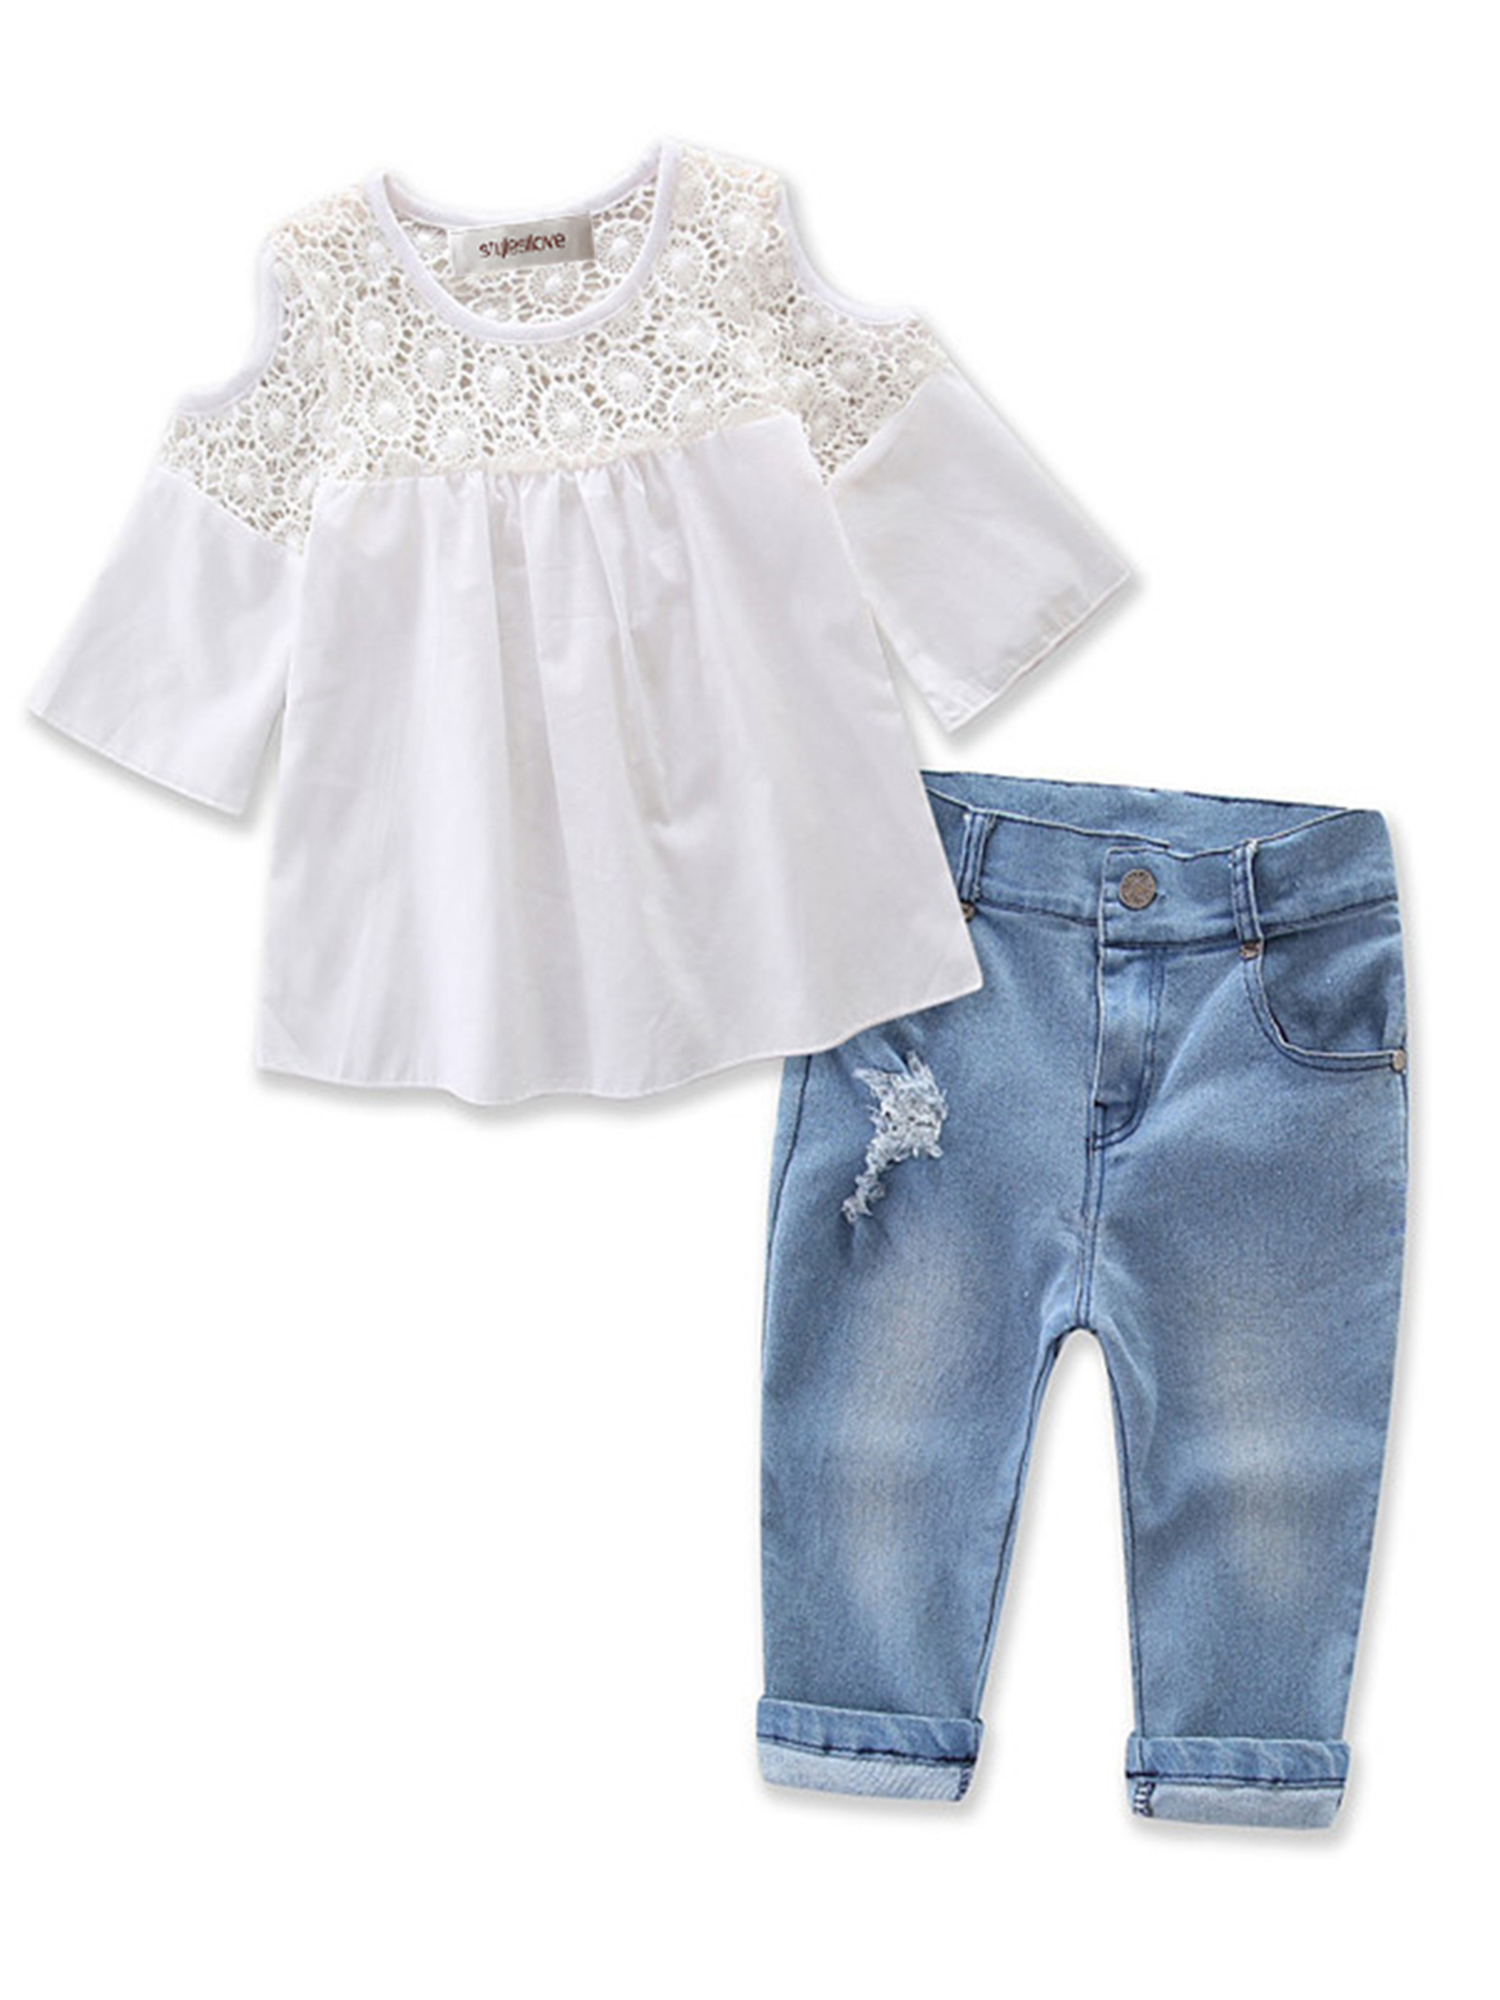 StylesILove Sweet Girl Lace Design Off Shoulder 3/4 Sleeve Blouses and Jeans 2 pcs Outfit Set (3T)